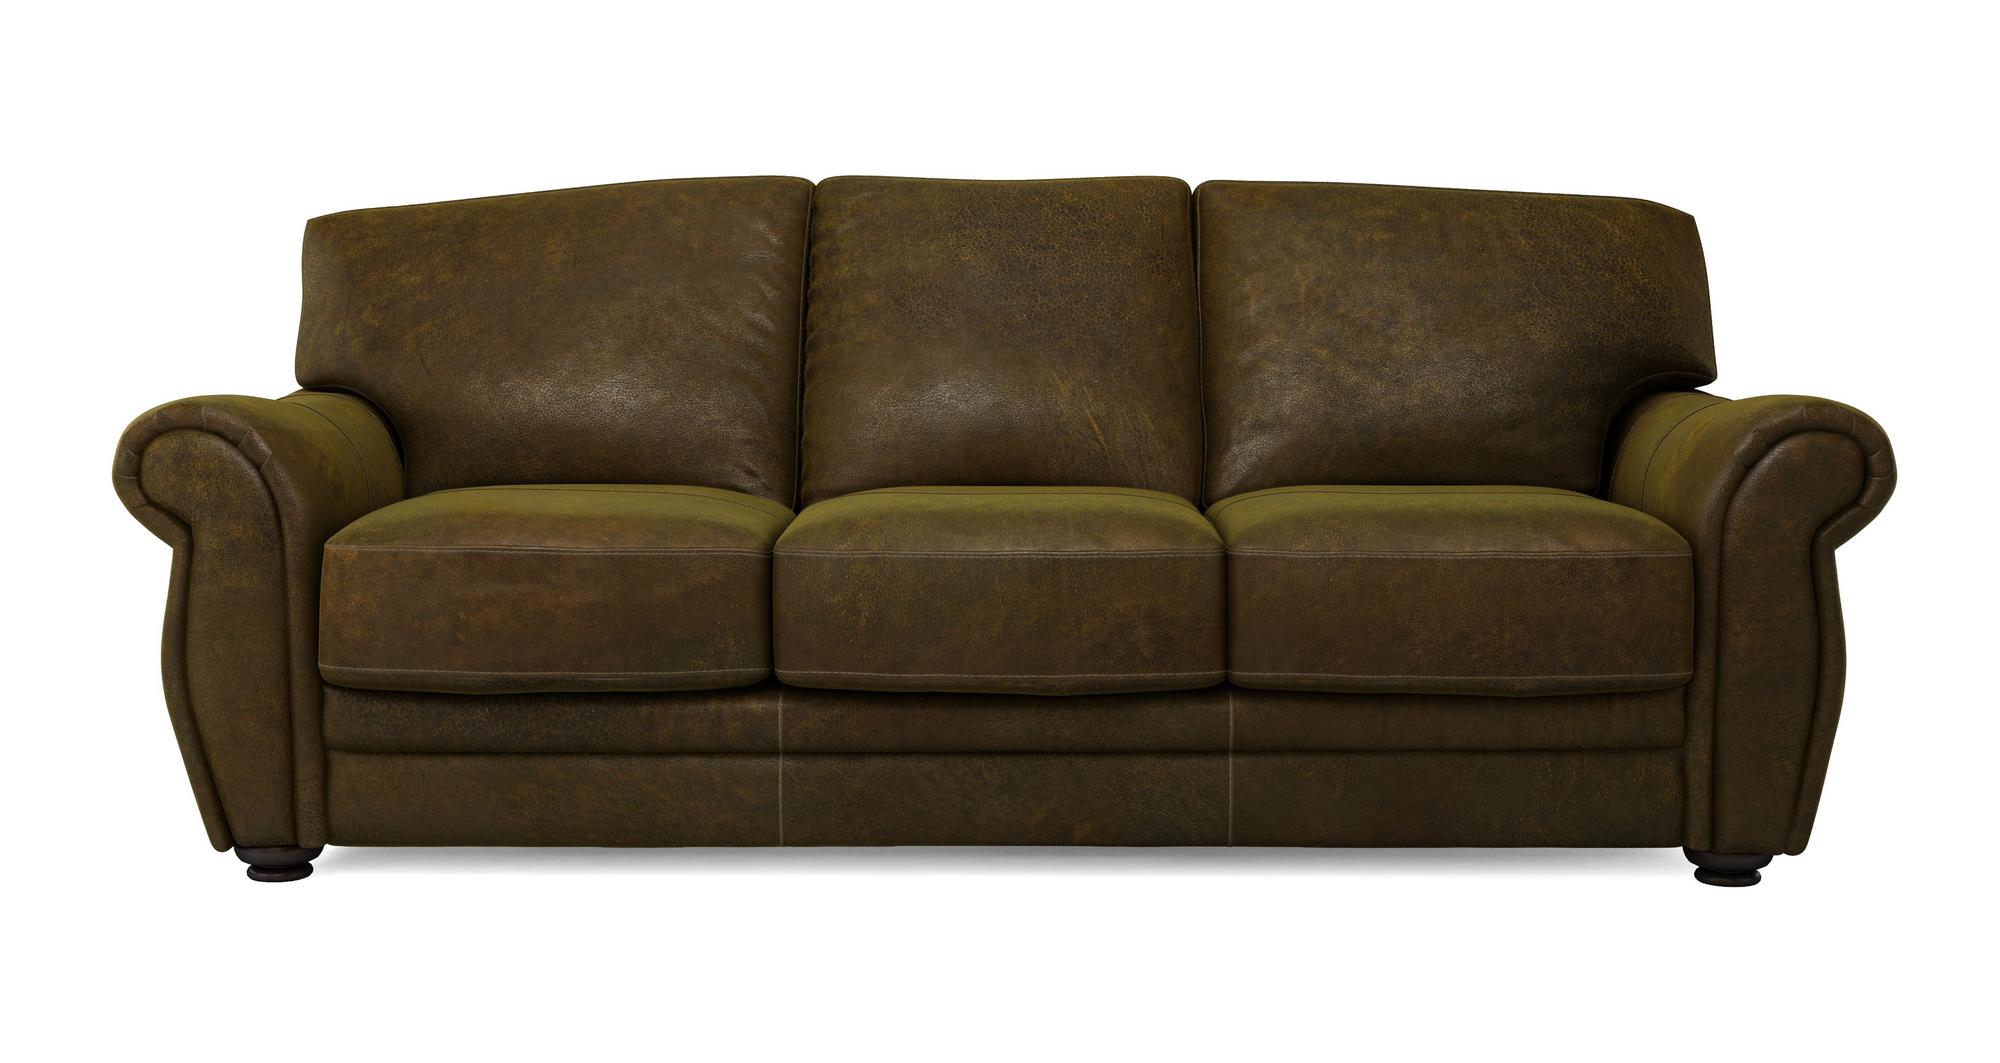 DFS Giovanna Camel Brown Natural Leather 3 Seater Sofa eBay : giovanna3avintagecamelview1 from www.ebay.co.uk size 2000 x 1063 jpeg 146kB